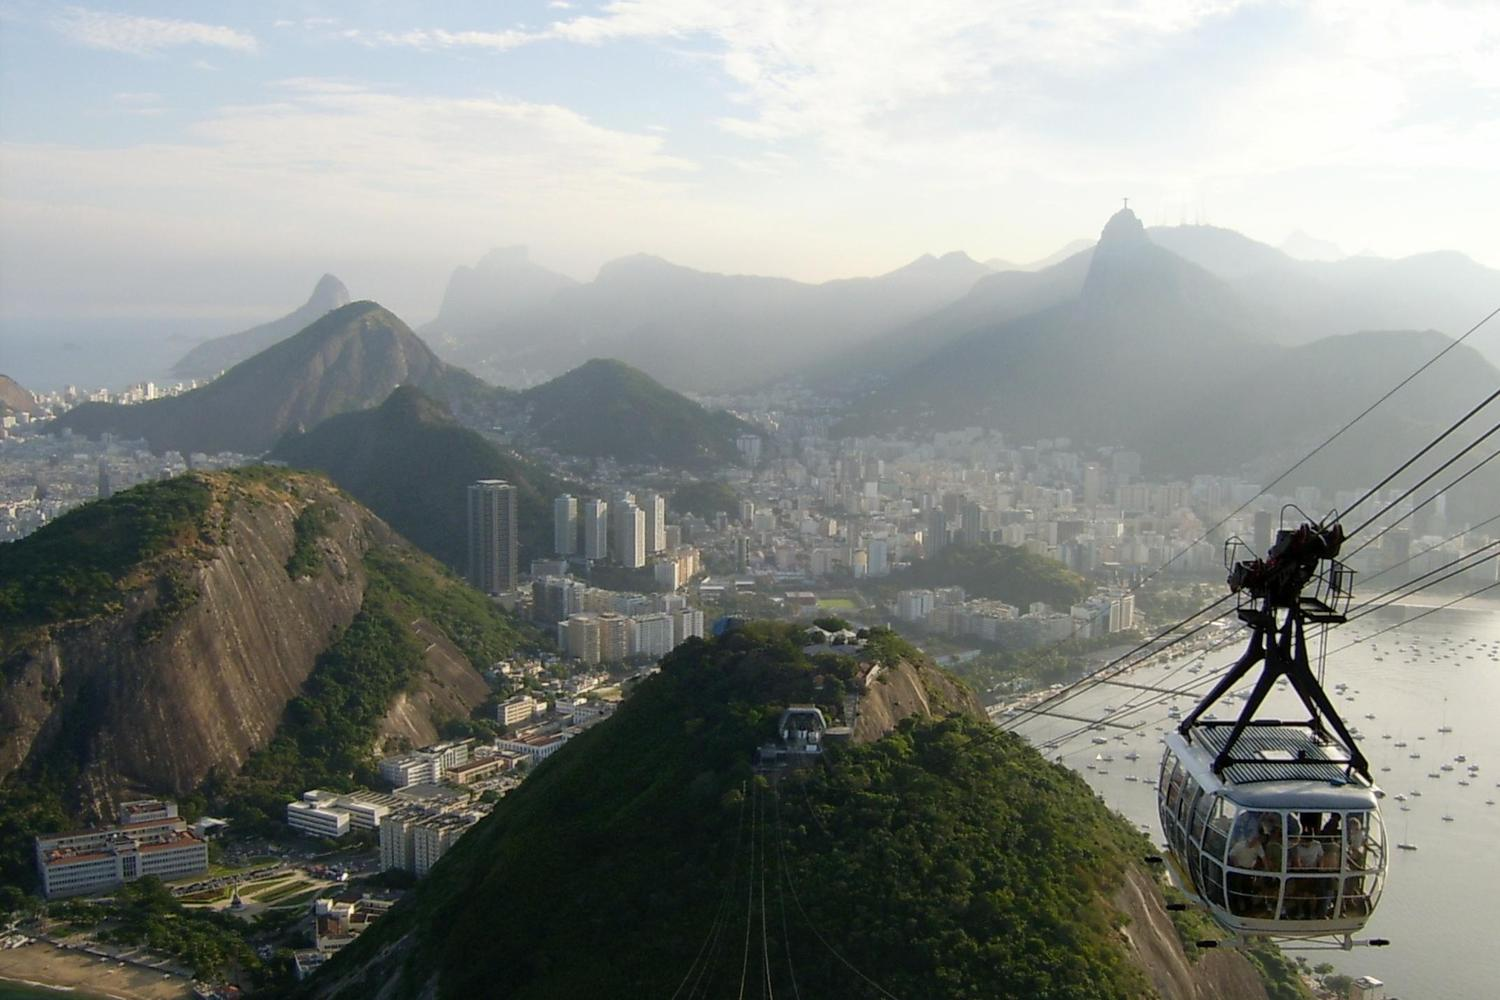 The cable car up to Sugarloaf mountain